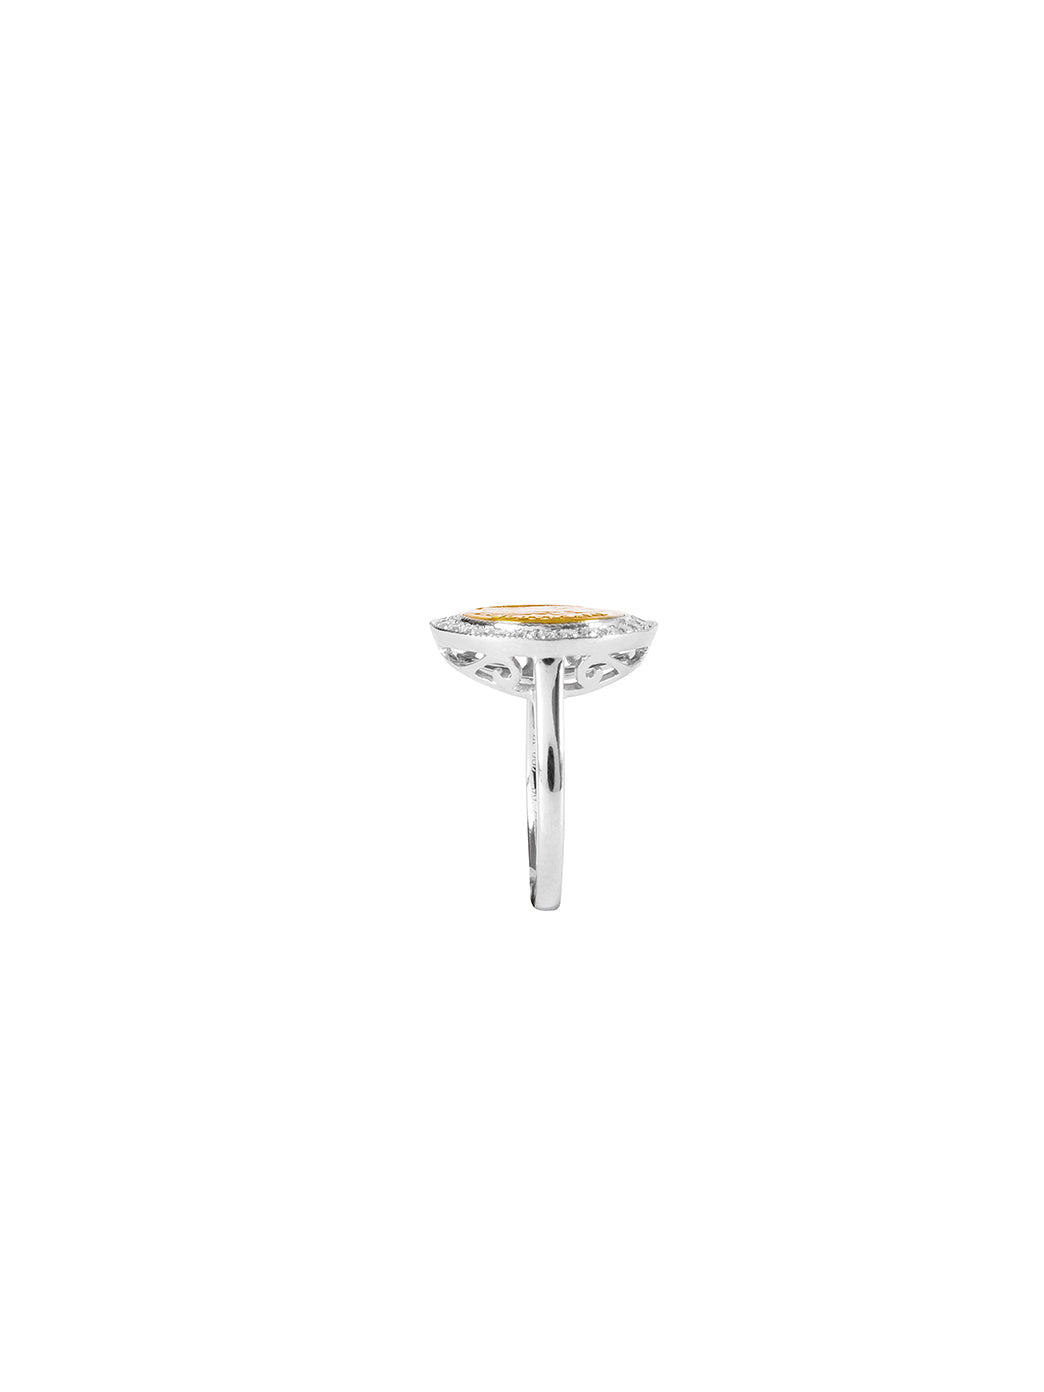 Fiorina Jewellery Gold Button Pinkie Ring Side View